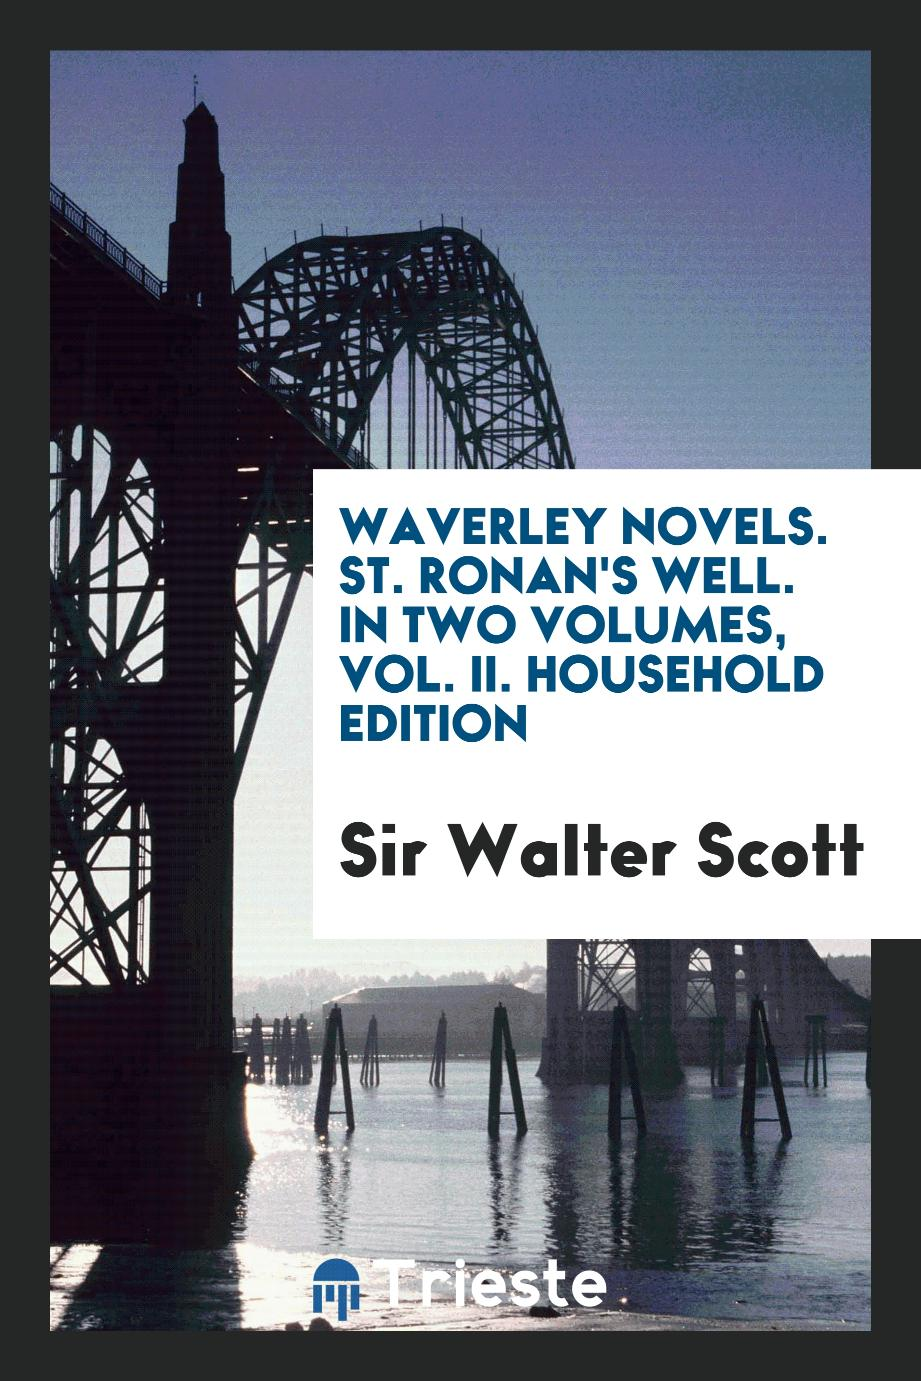 Waverley Novels. St. Ronan's Well. In Two Volumes, Vol. II. Household Edition